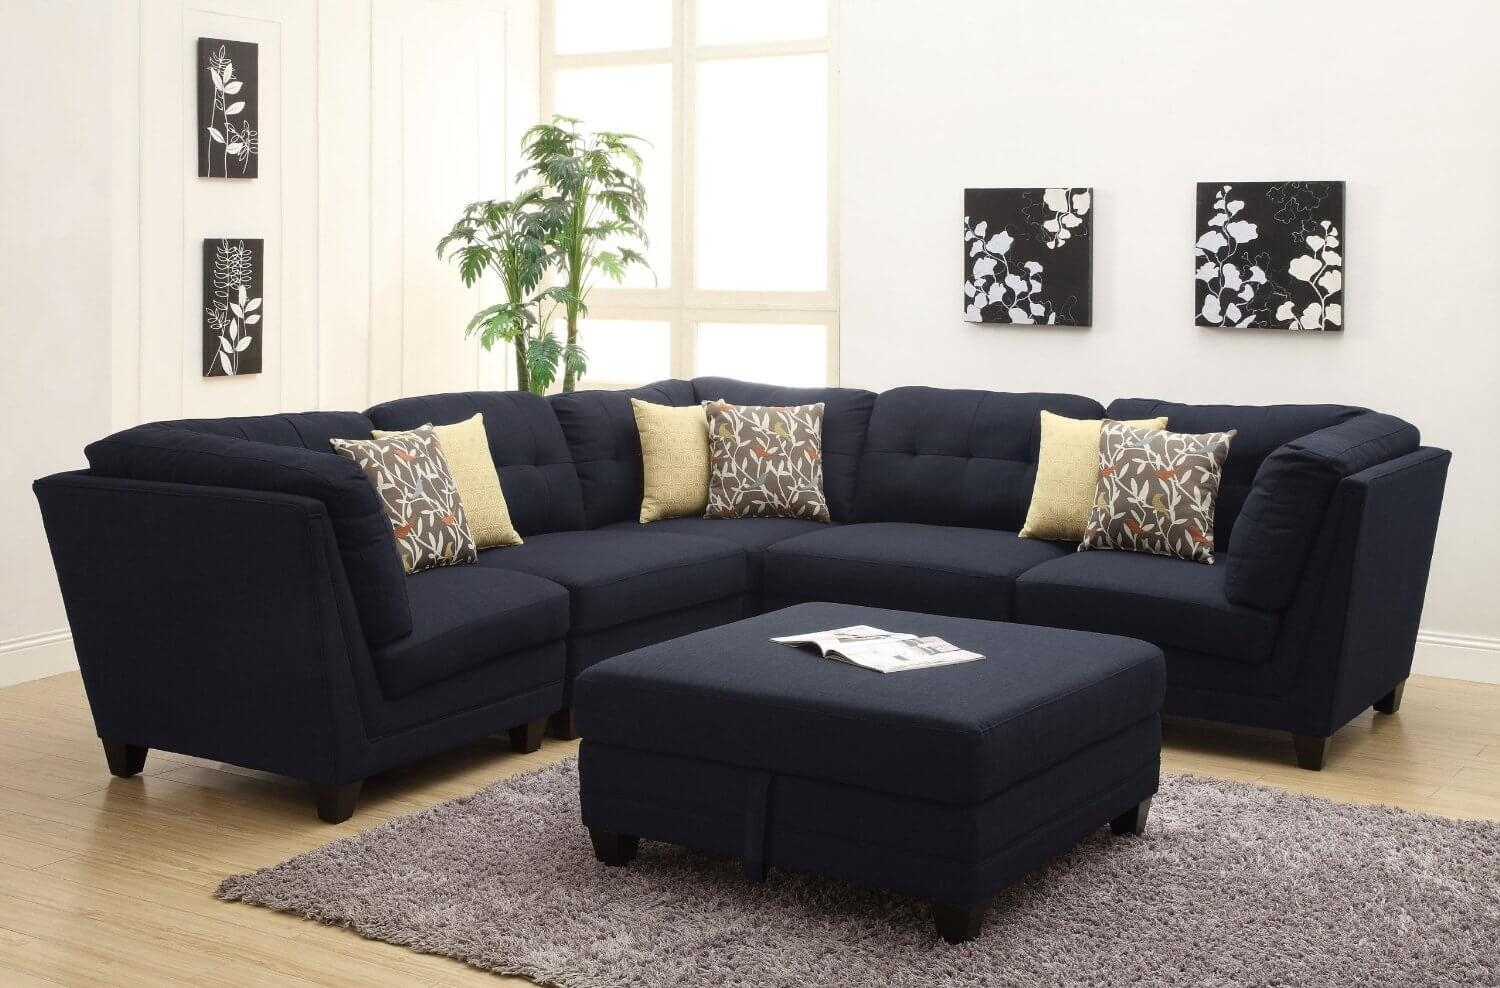 Manstad Sectional Sofa Bed Storage From Ikea – Leather Sectional Sofa Intended For Sectional Sofa With Storage (View 18 of 20)